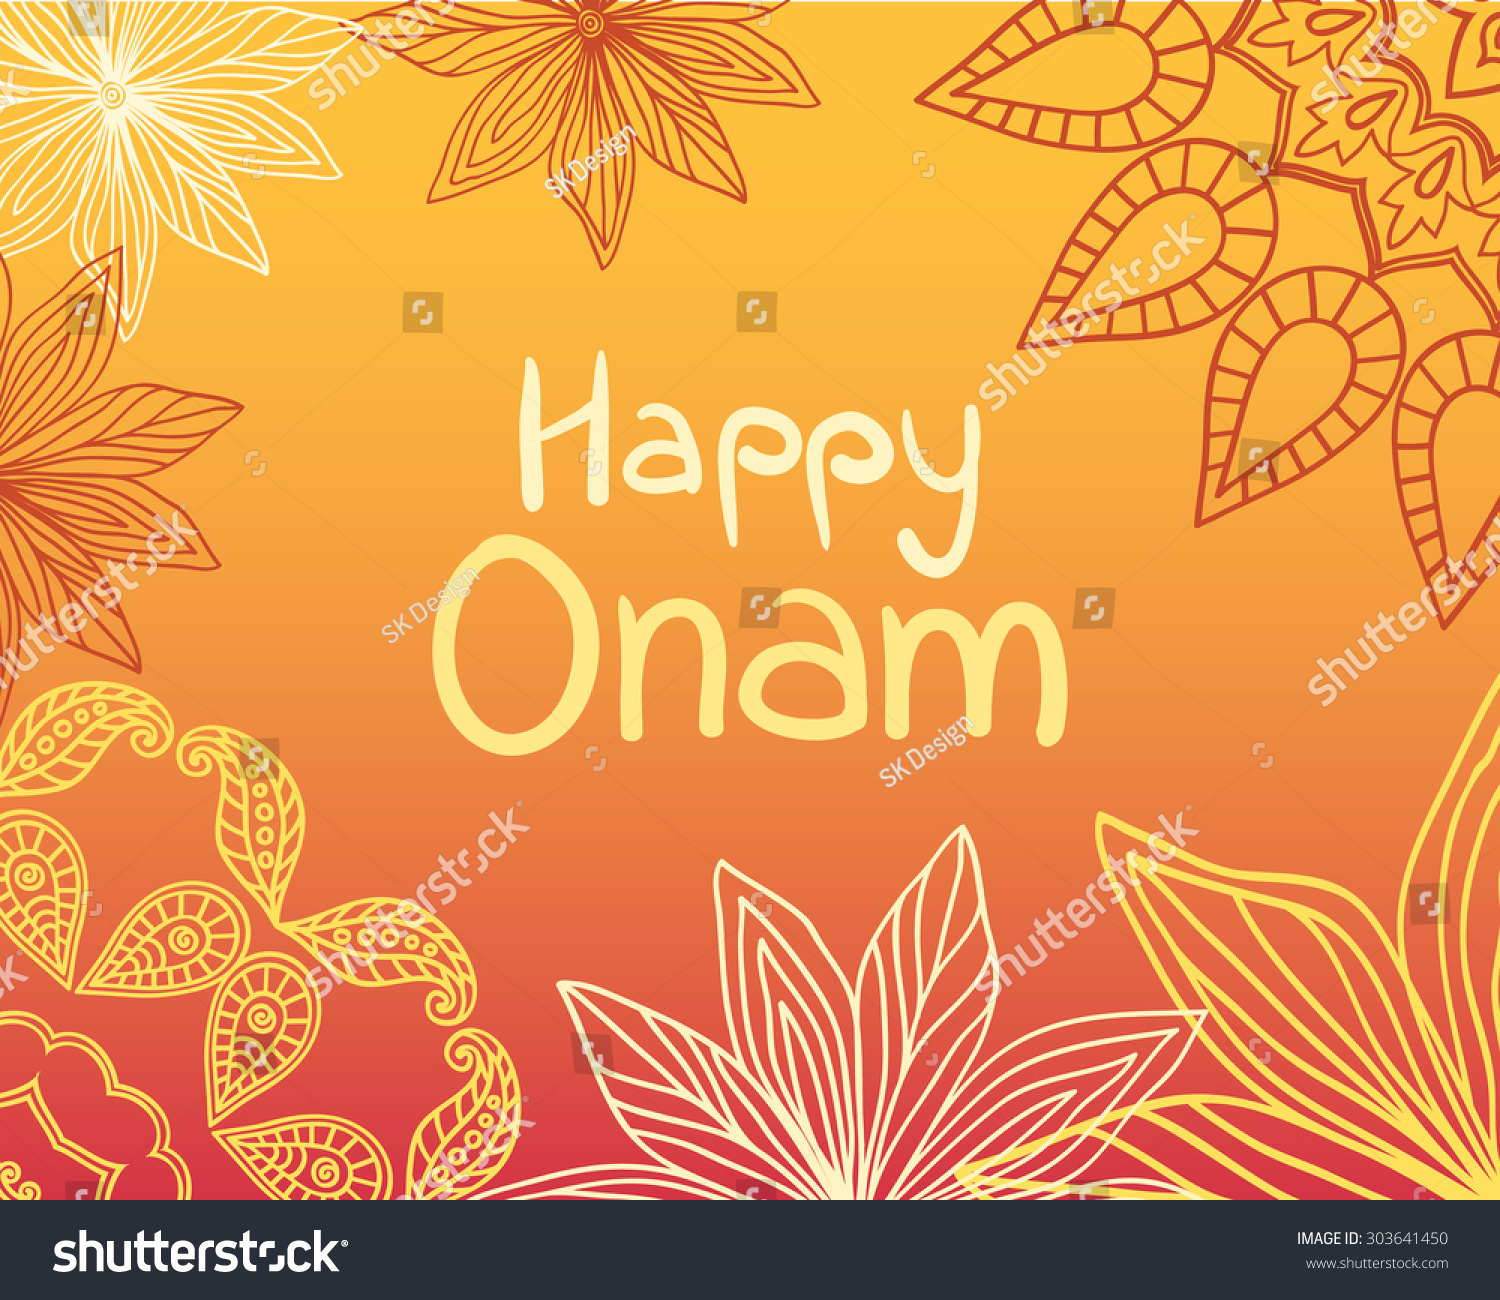 Happy Onam Greeting Card Indian Festival Stock Vector Royalty Free